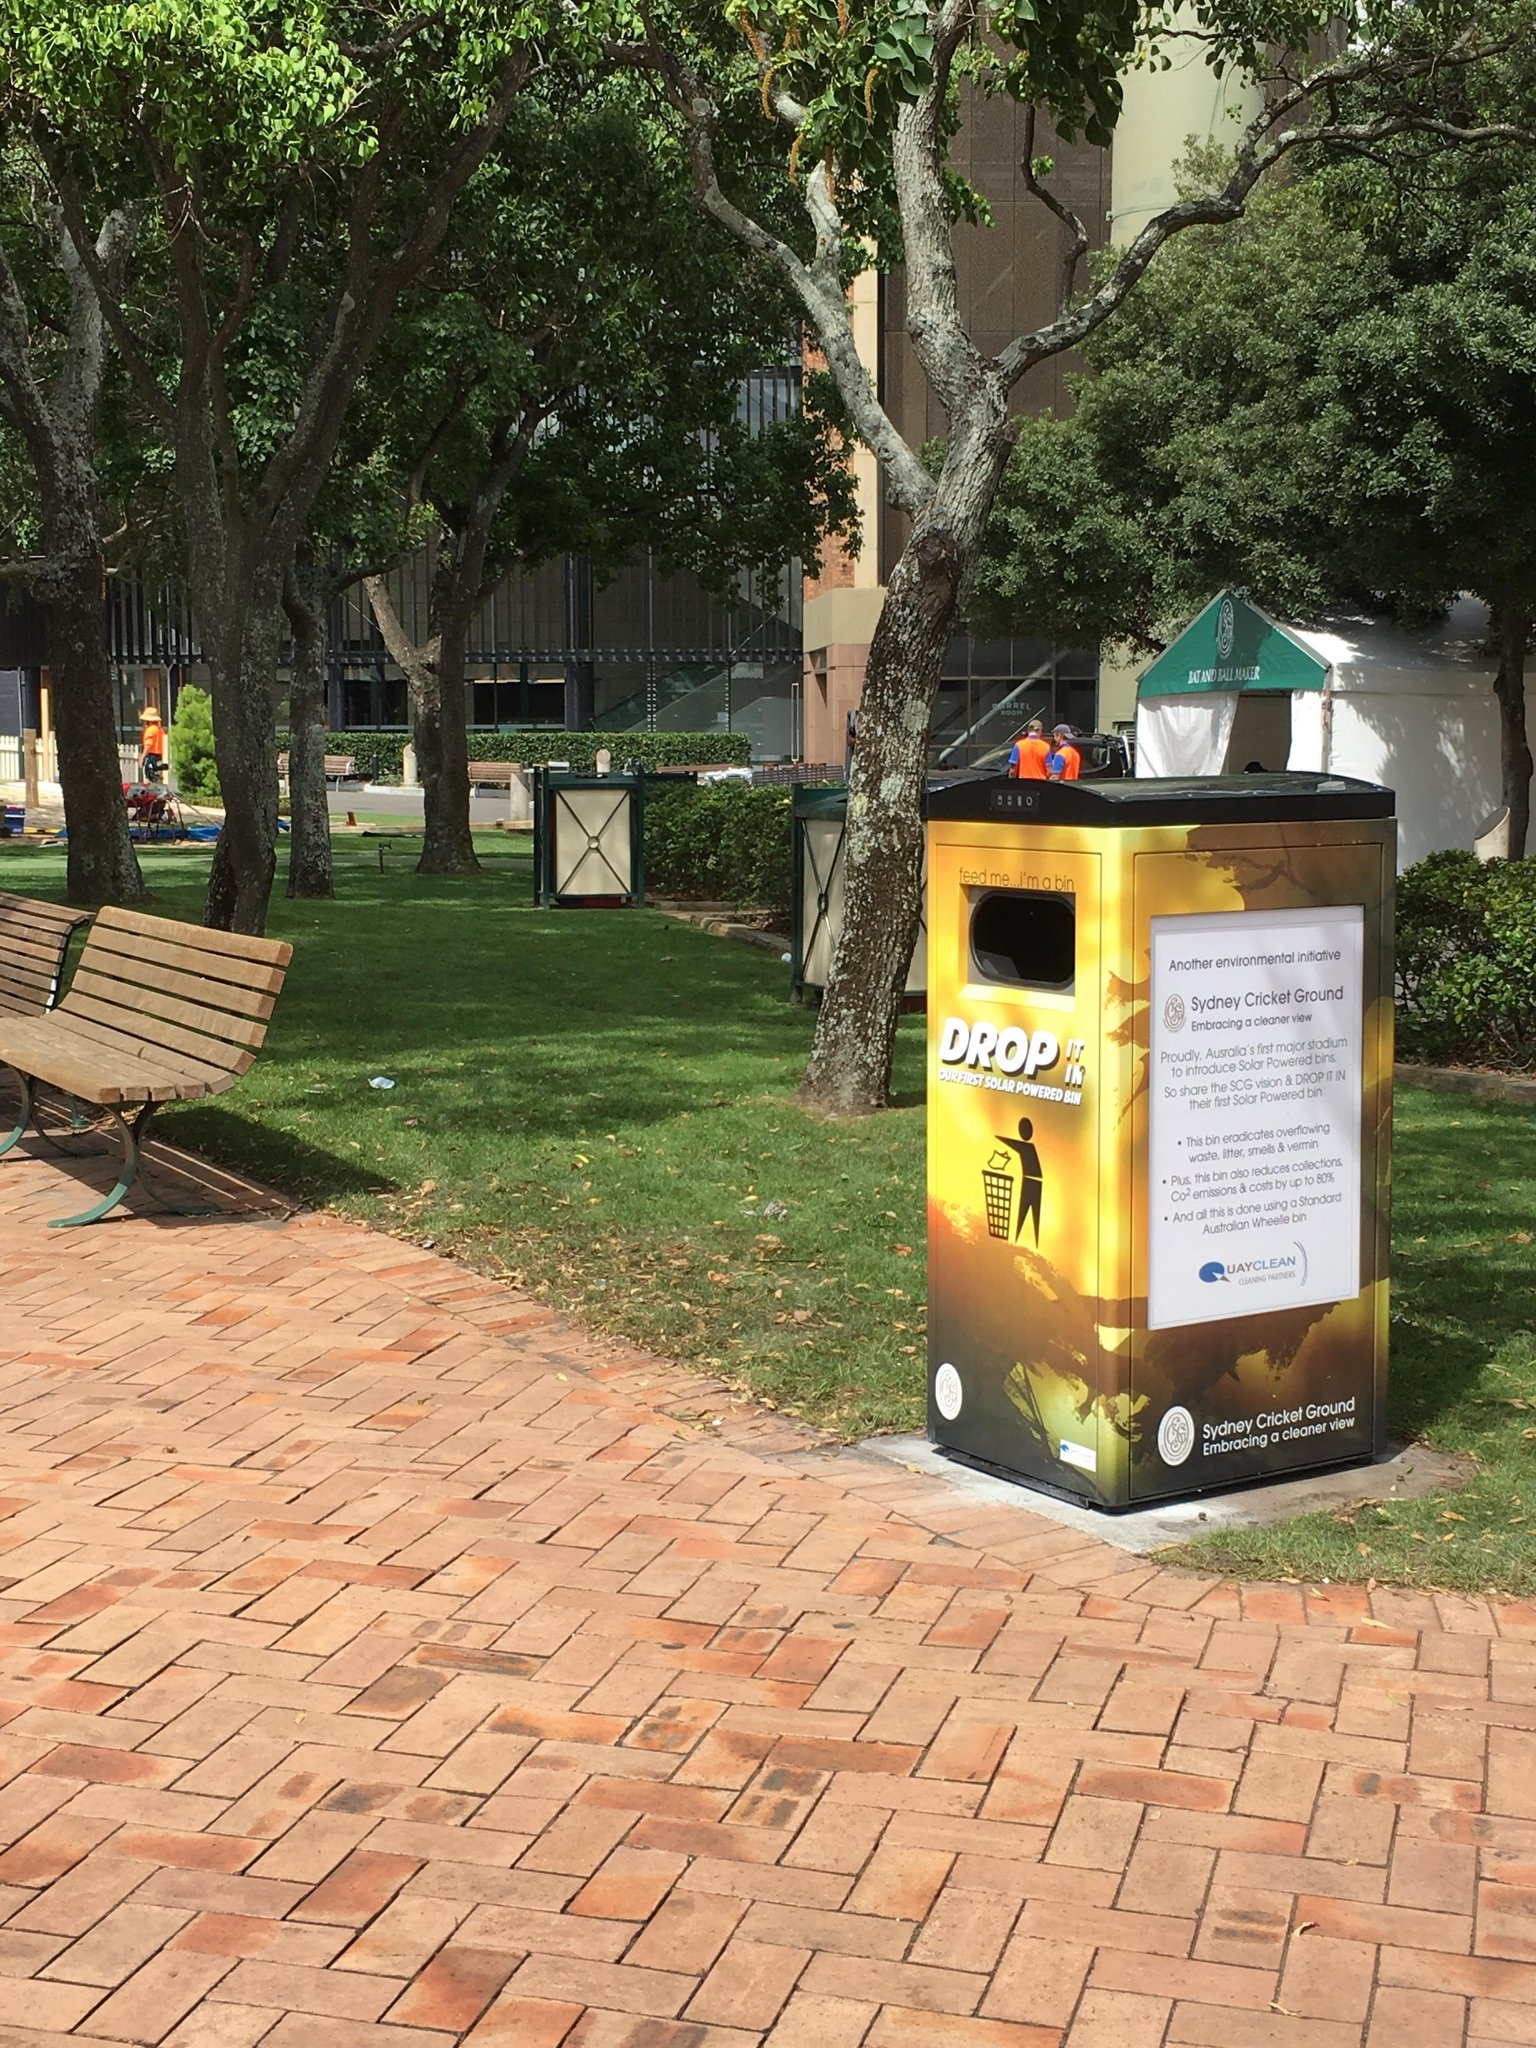 Solar-powered garbage compactor in Sydney, Australia